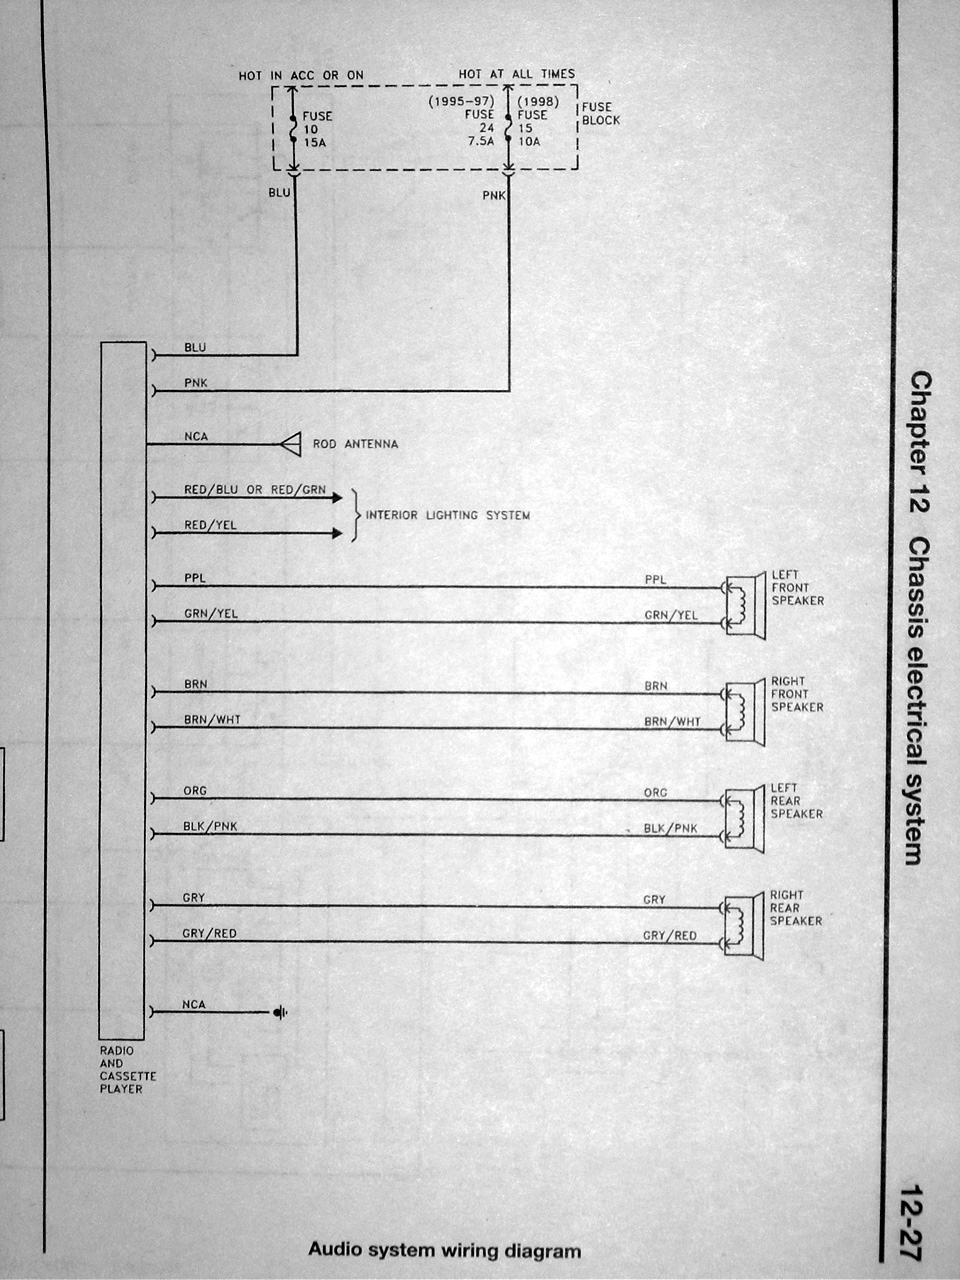 DSC01849 wiring diagram thread *useful info* nissan forum Pathfinder 94 Window Seals at bakdesigns.co